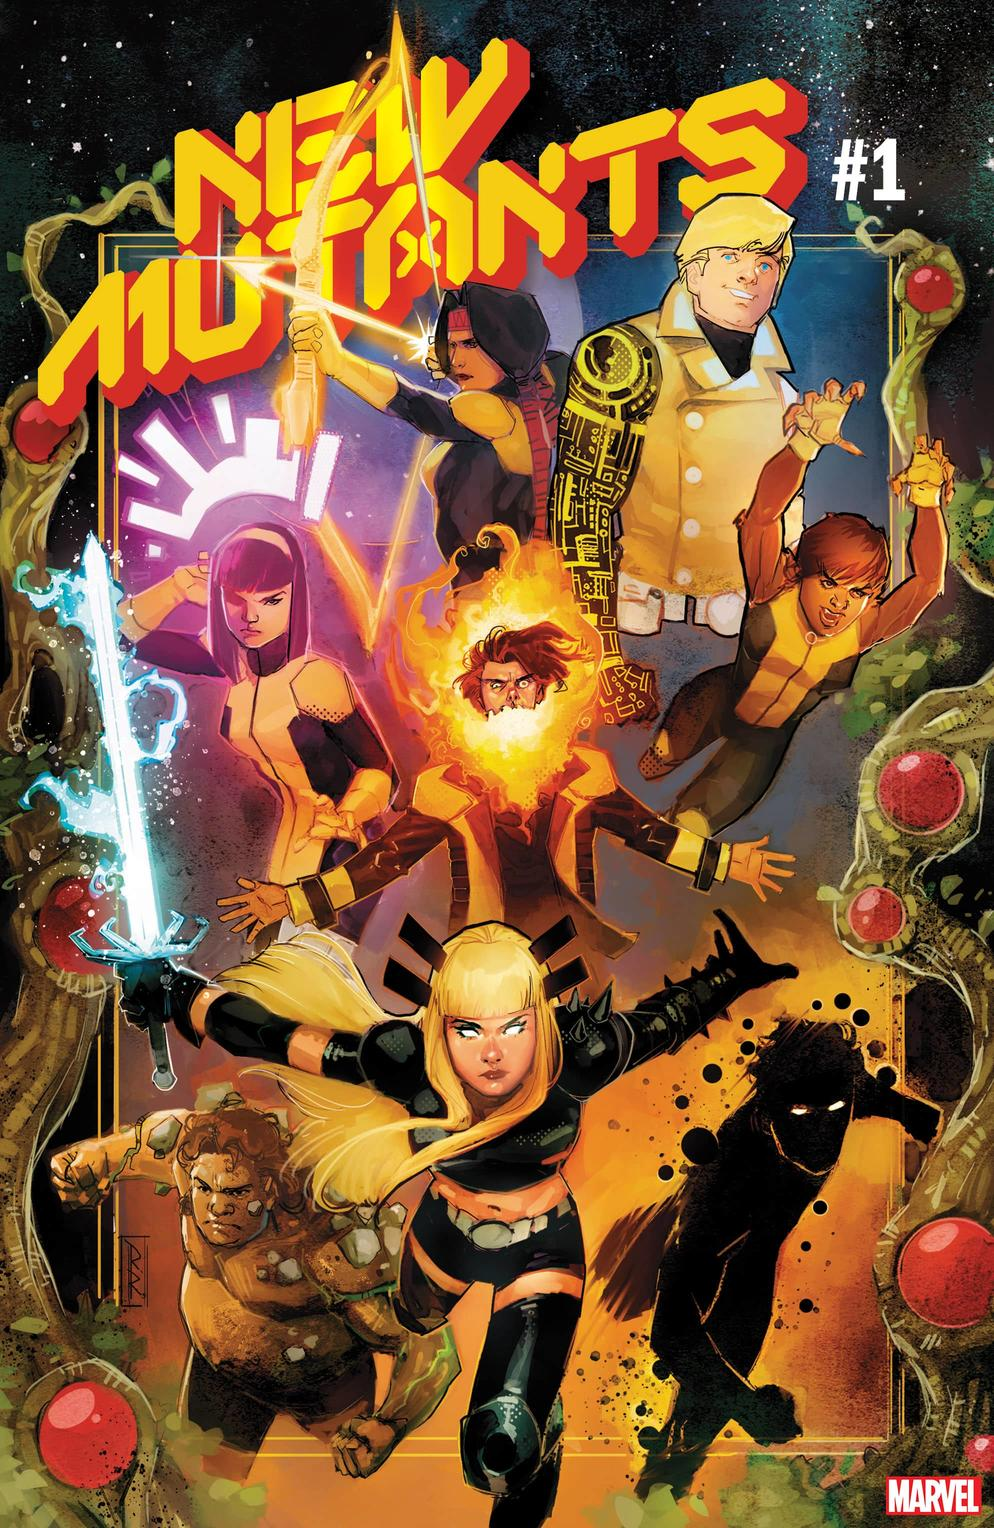 NEW MUTANTS #1 cover by Rod Reis